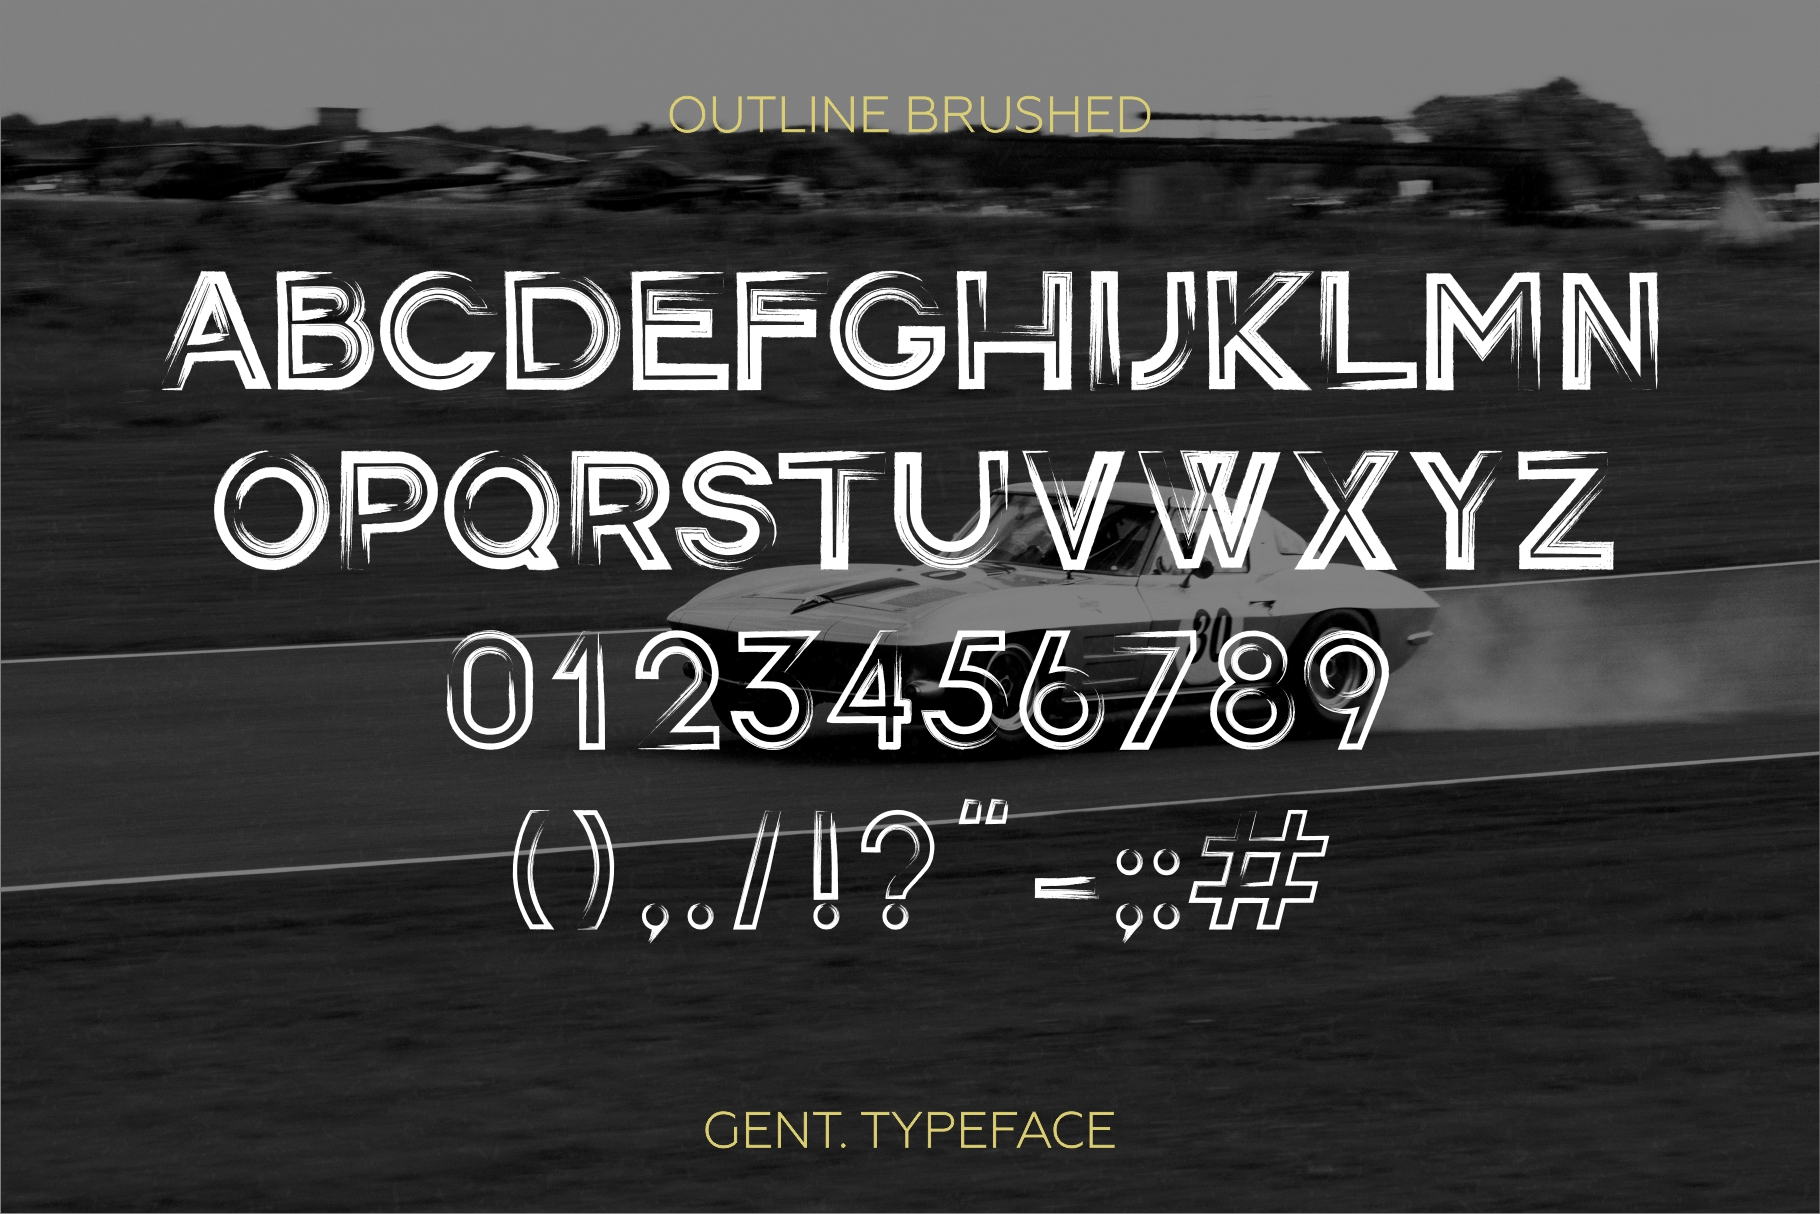 Gent. Display brushed typeface. Striking and modern. example image 7